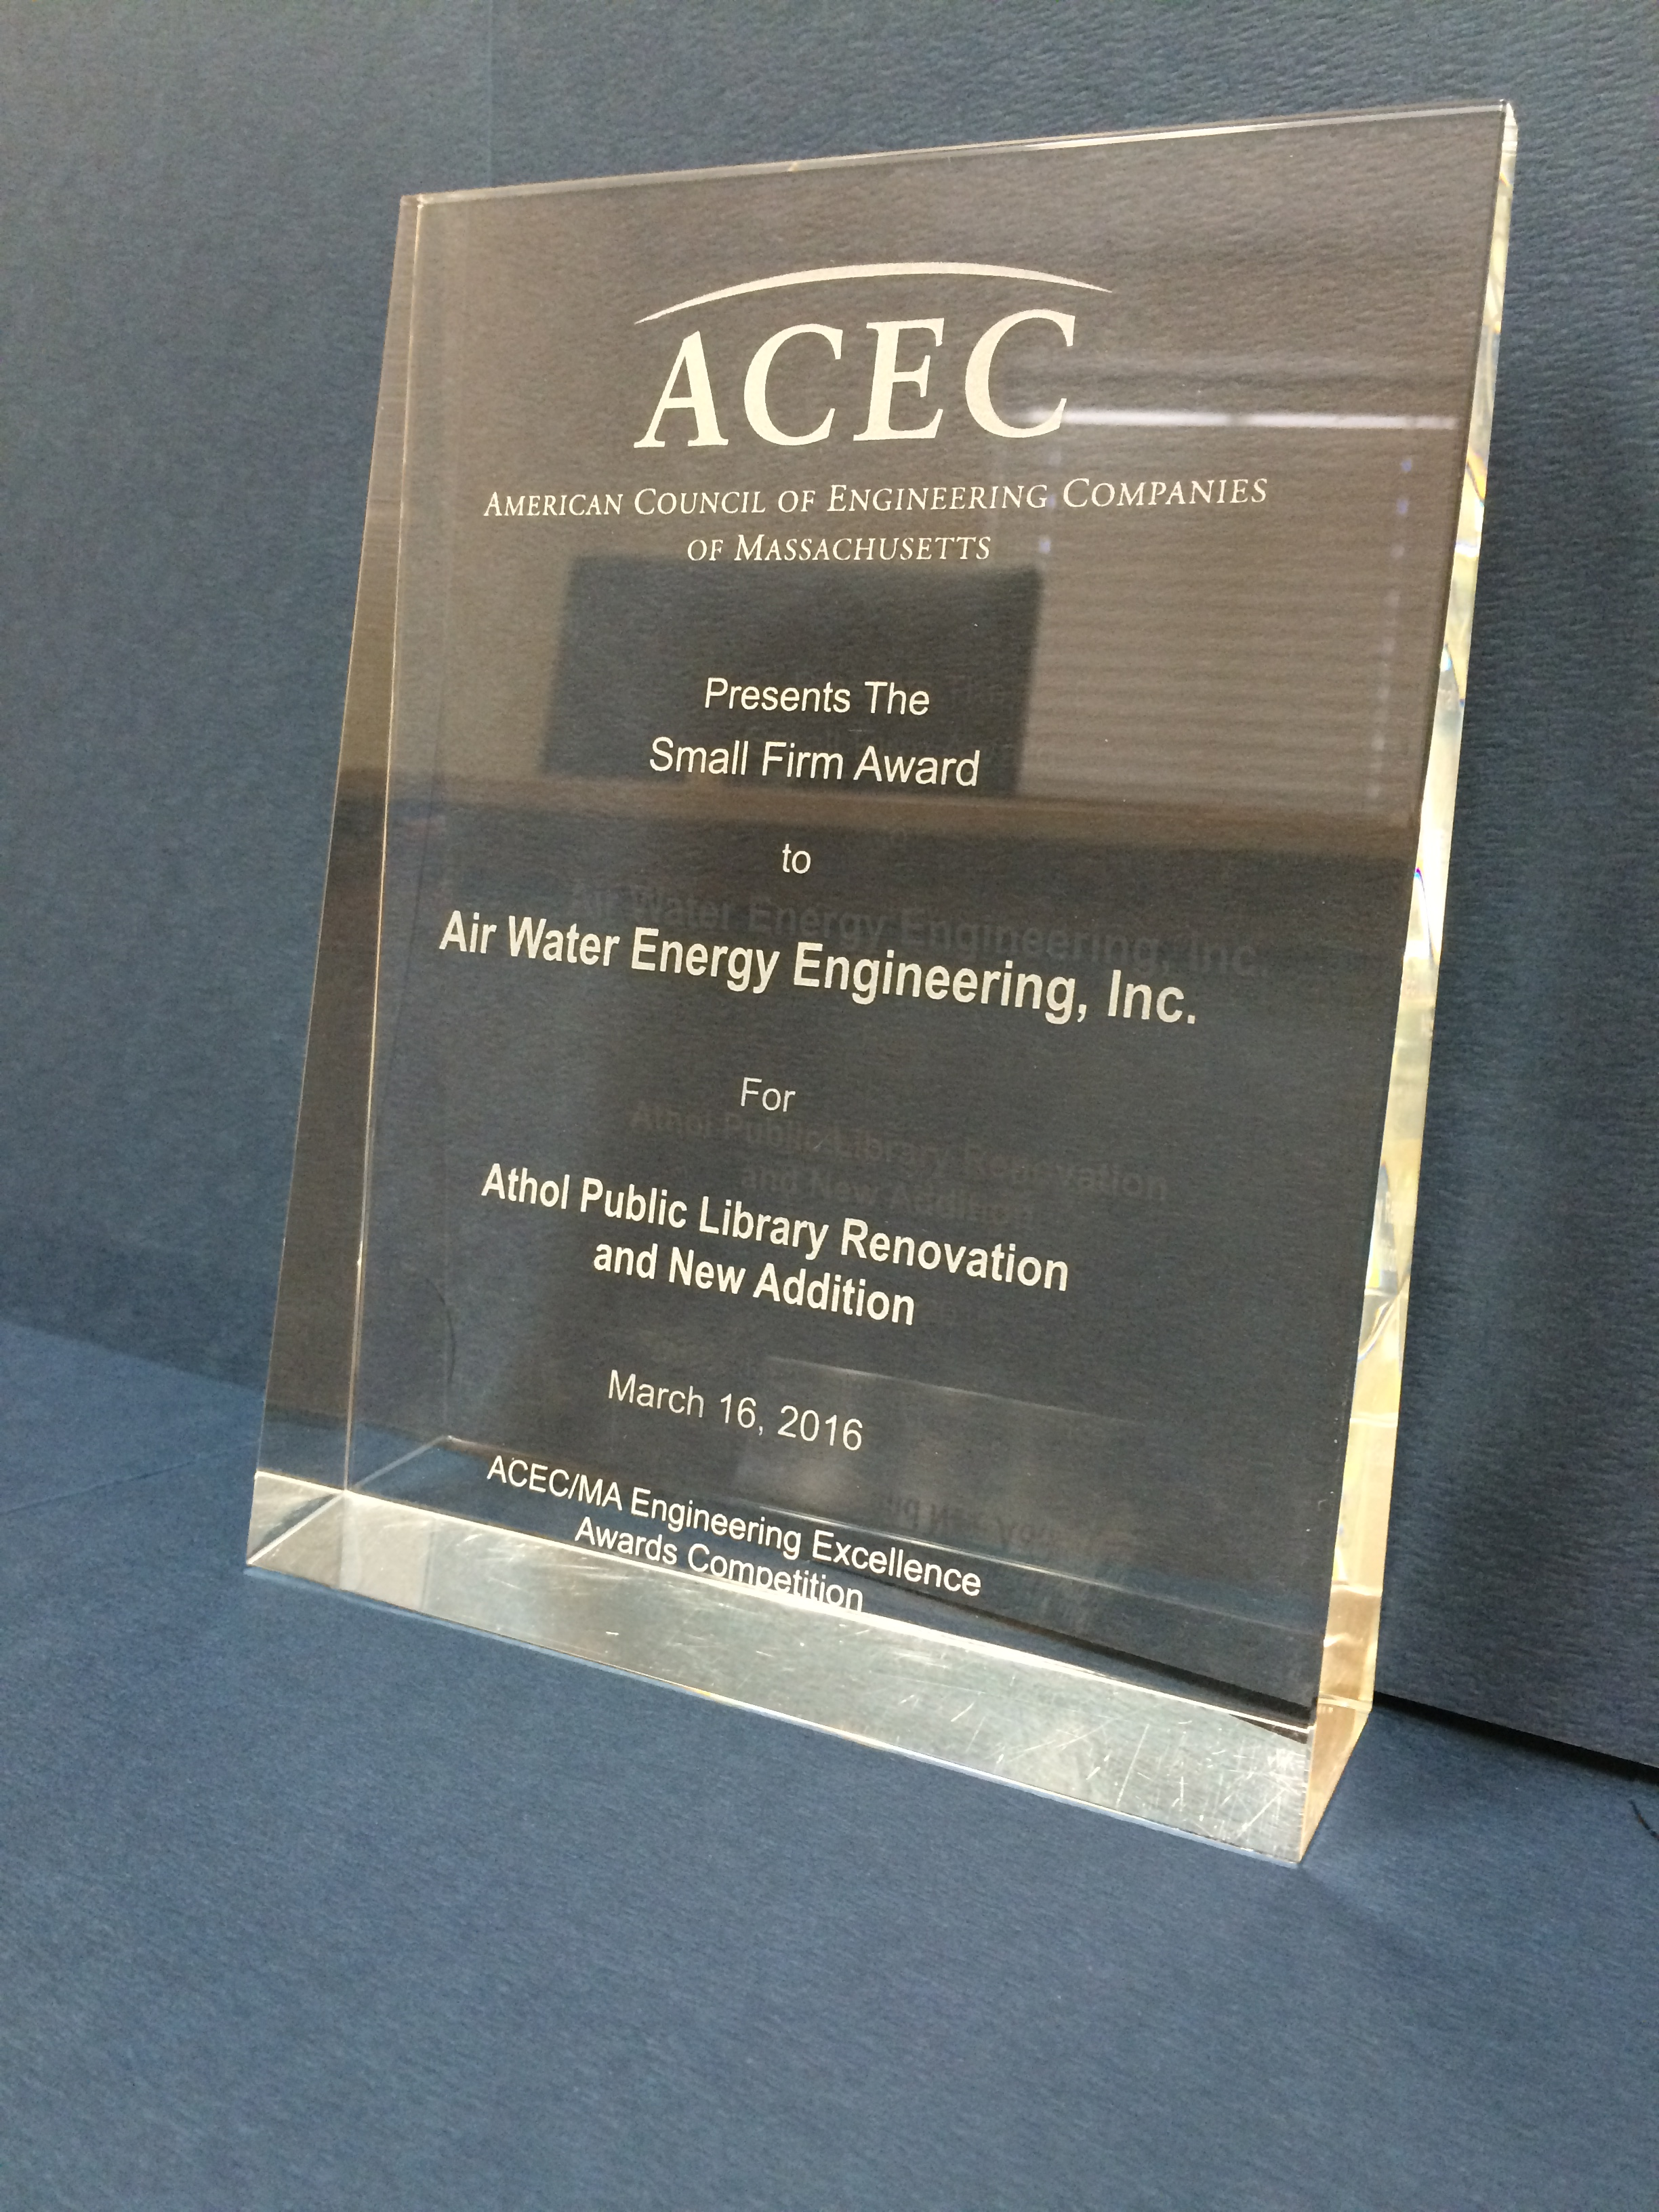 AWE 2016 ACEC Small Firm Award Winner